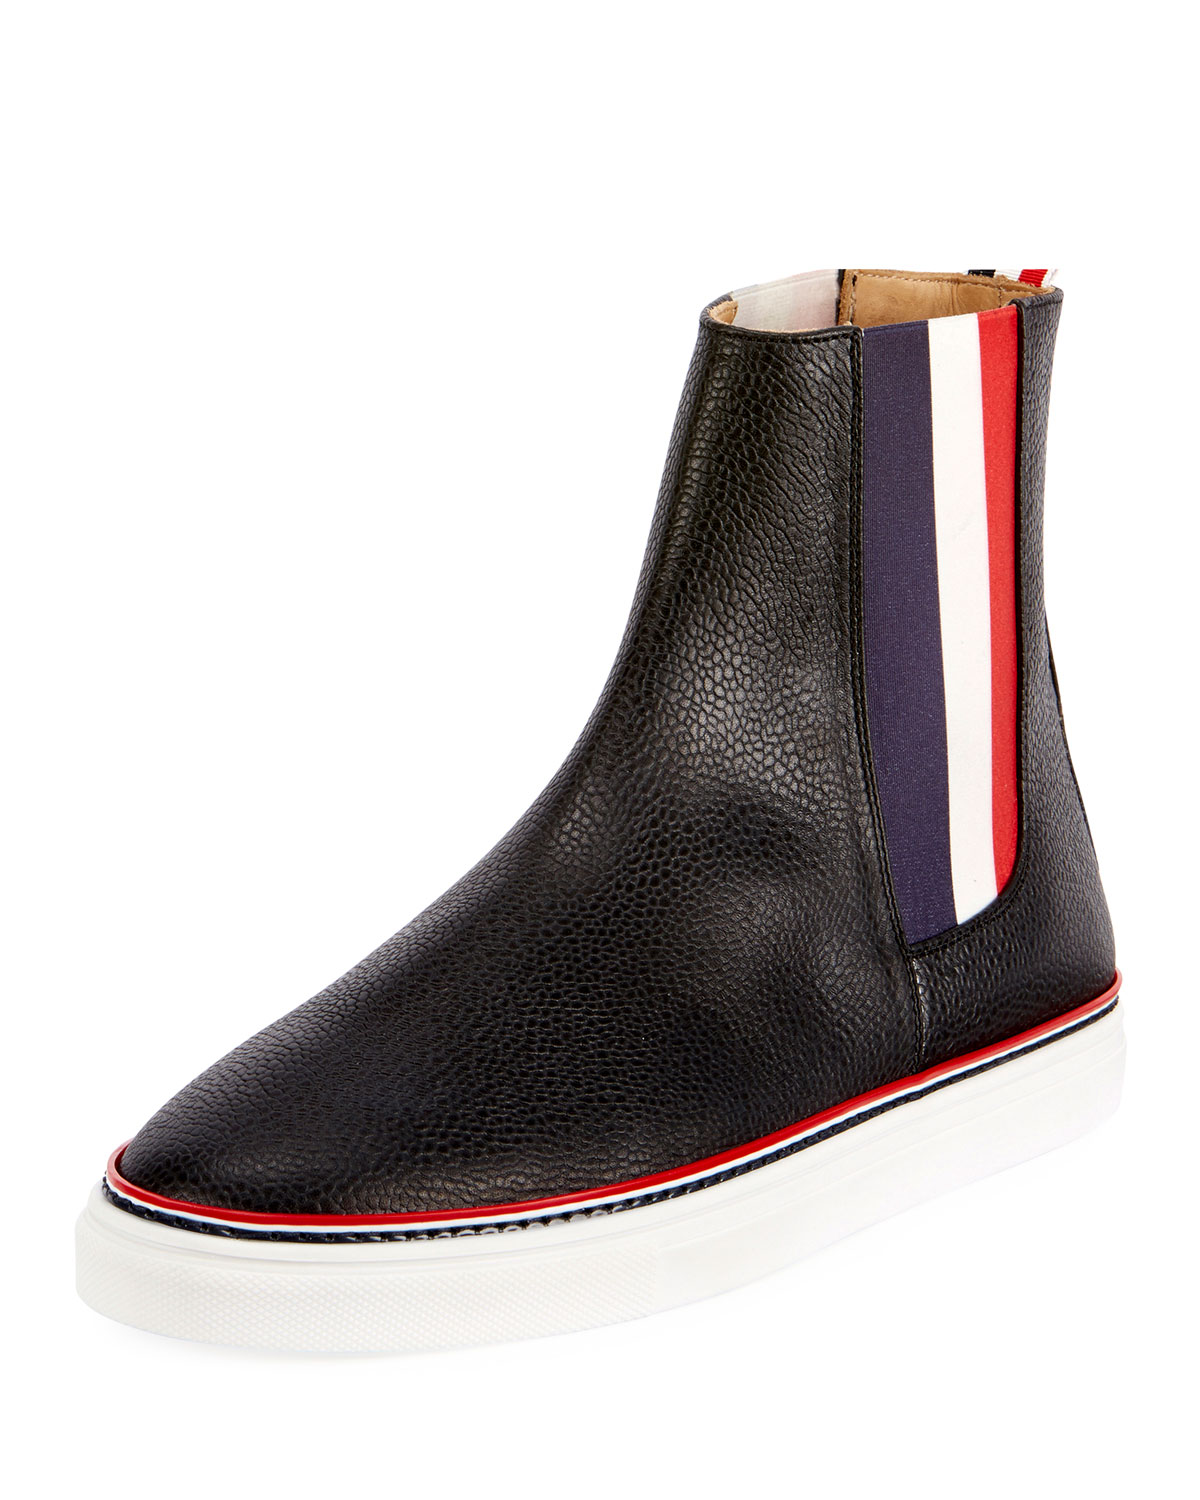 4b5bb42c3e1 Thom Browne Men s Chelsea Leather High-Top Sneakers with Stripes ...